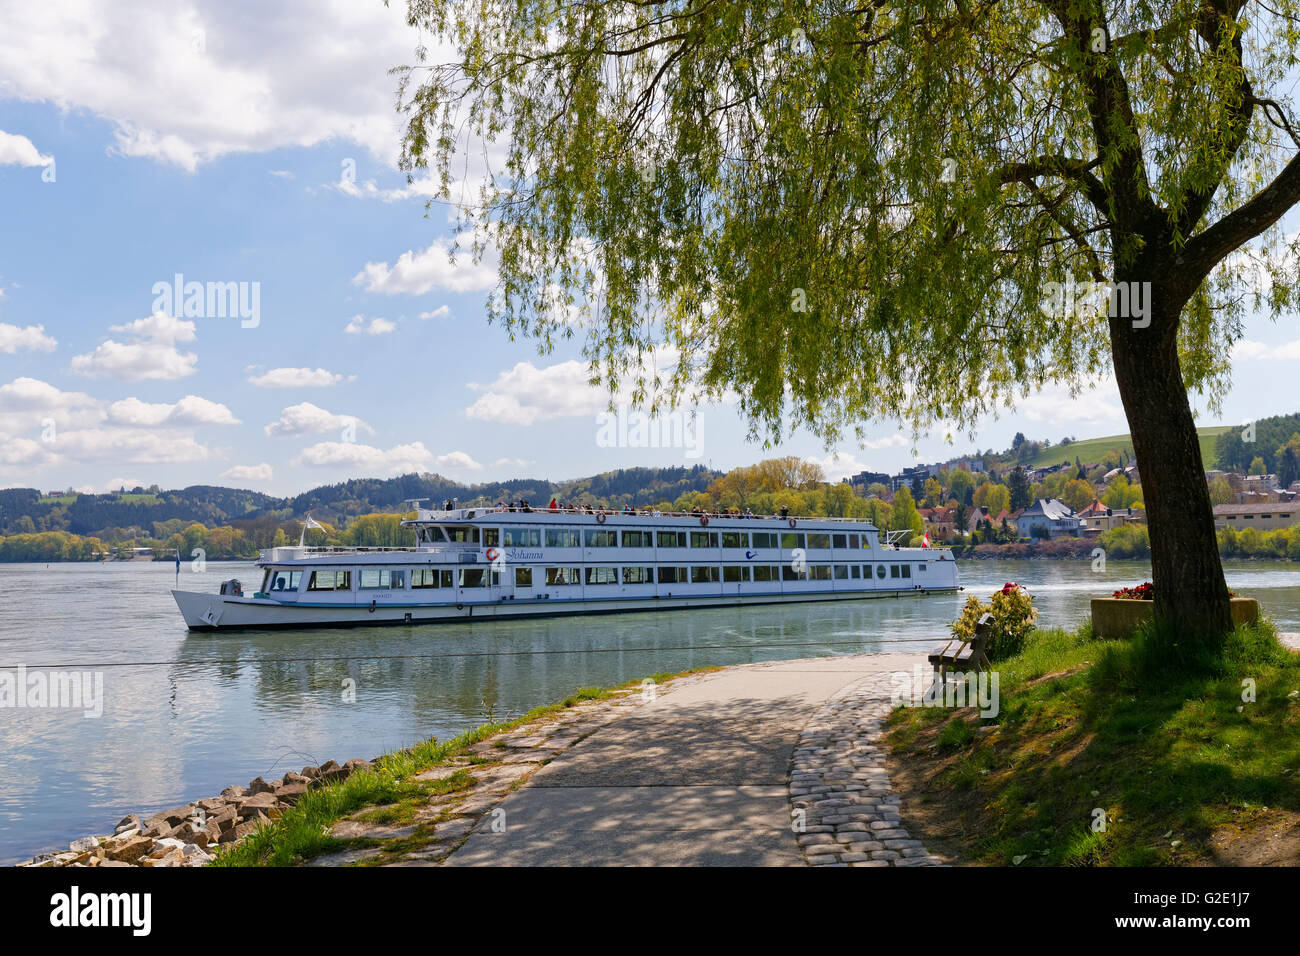 Excursion boat, estuary from Inn into the Danube, Passau, Lower Bavaria, Bavaria, Germany - Stock Image